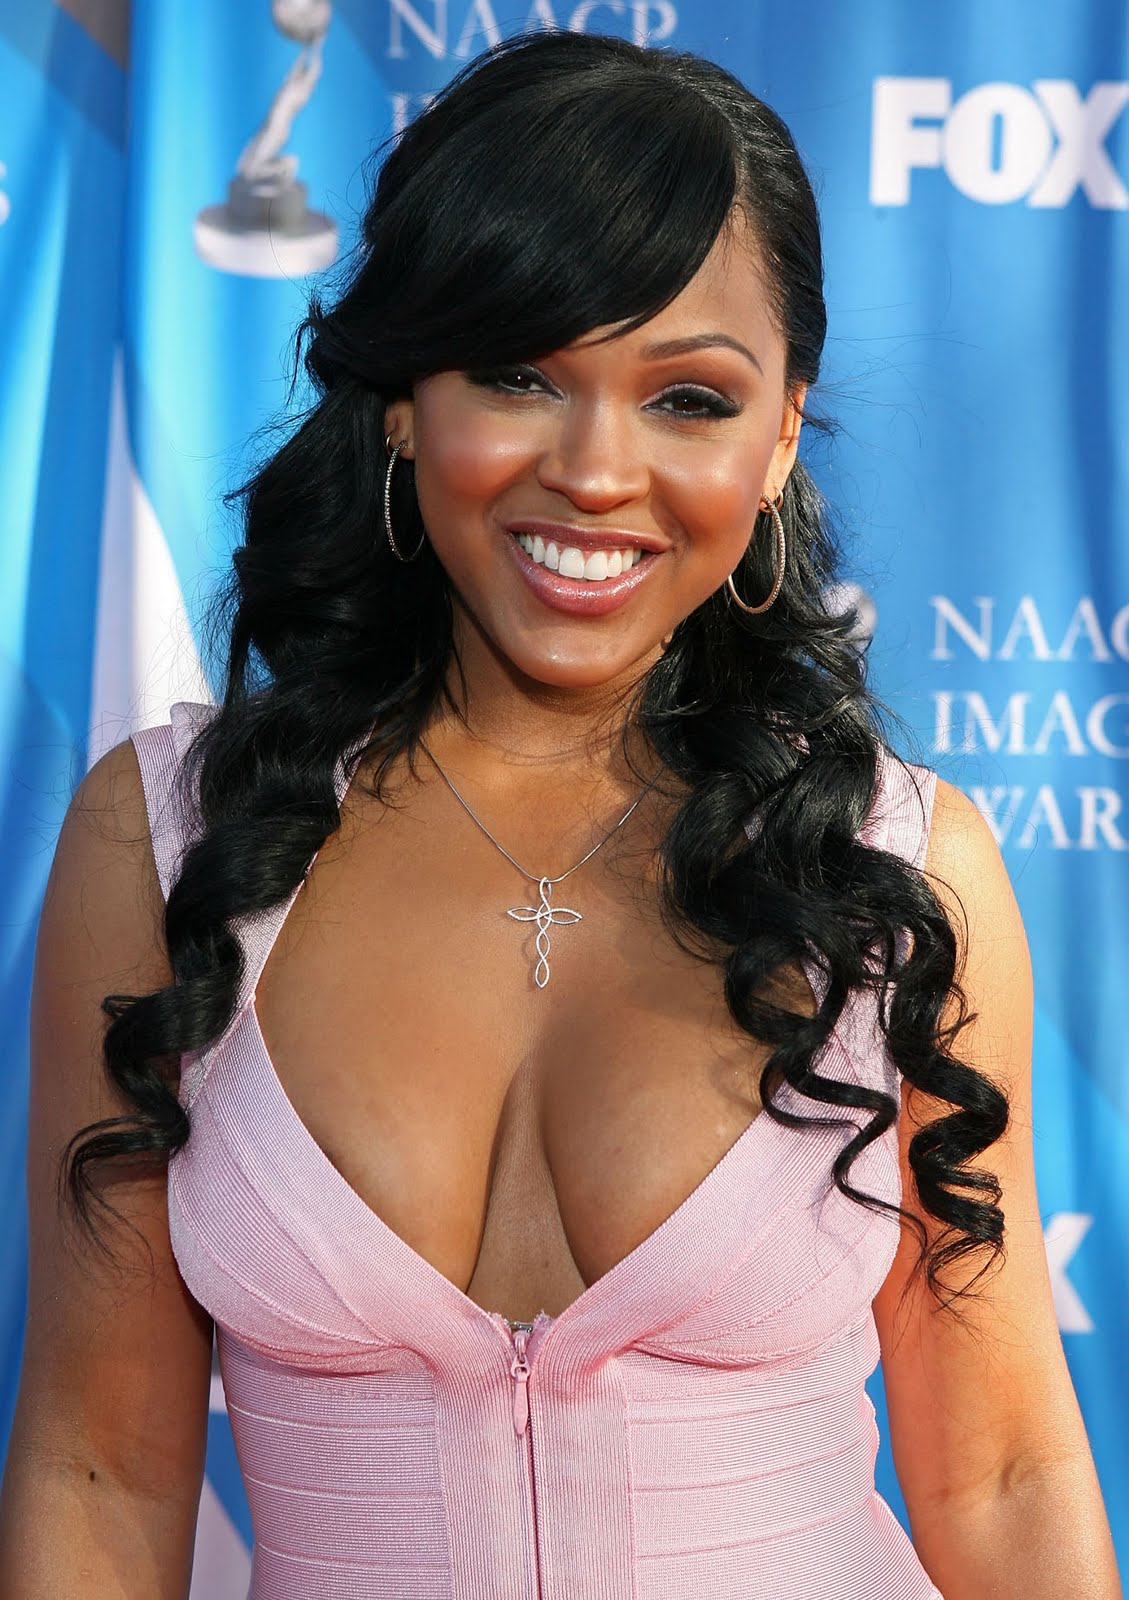 Meagan good hot pics